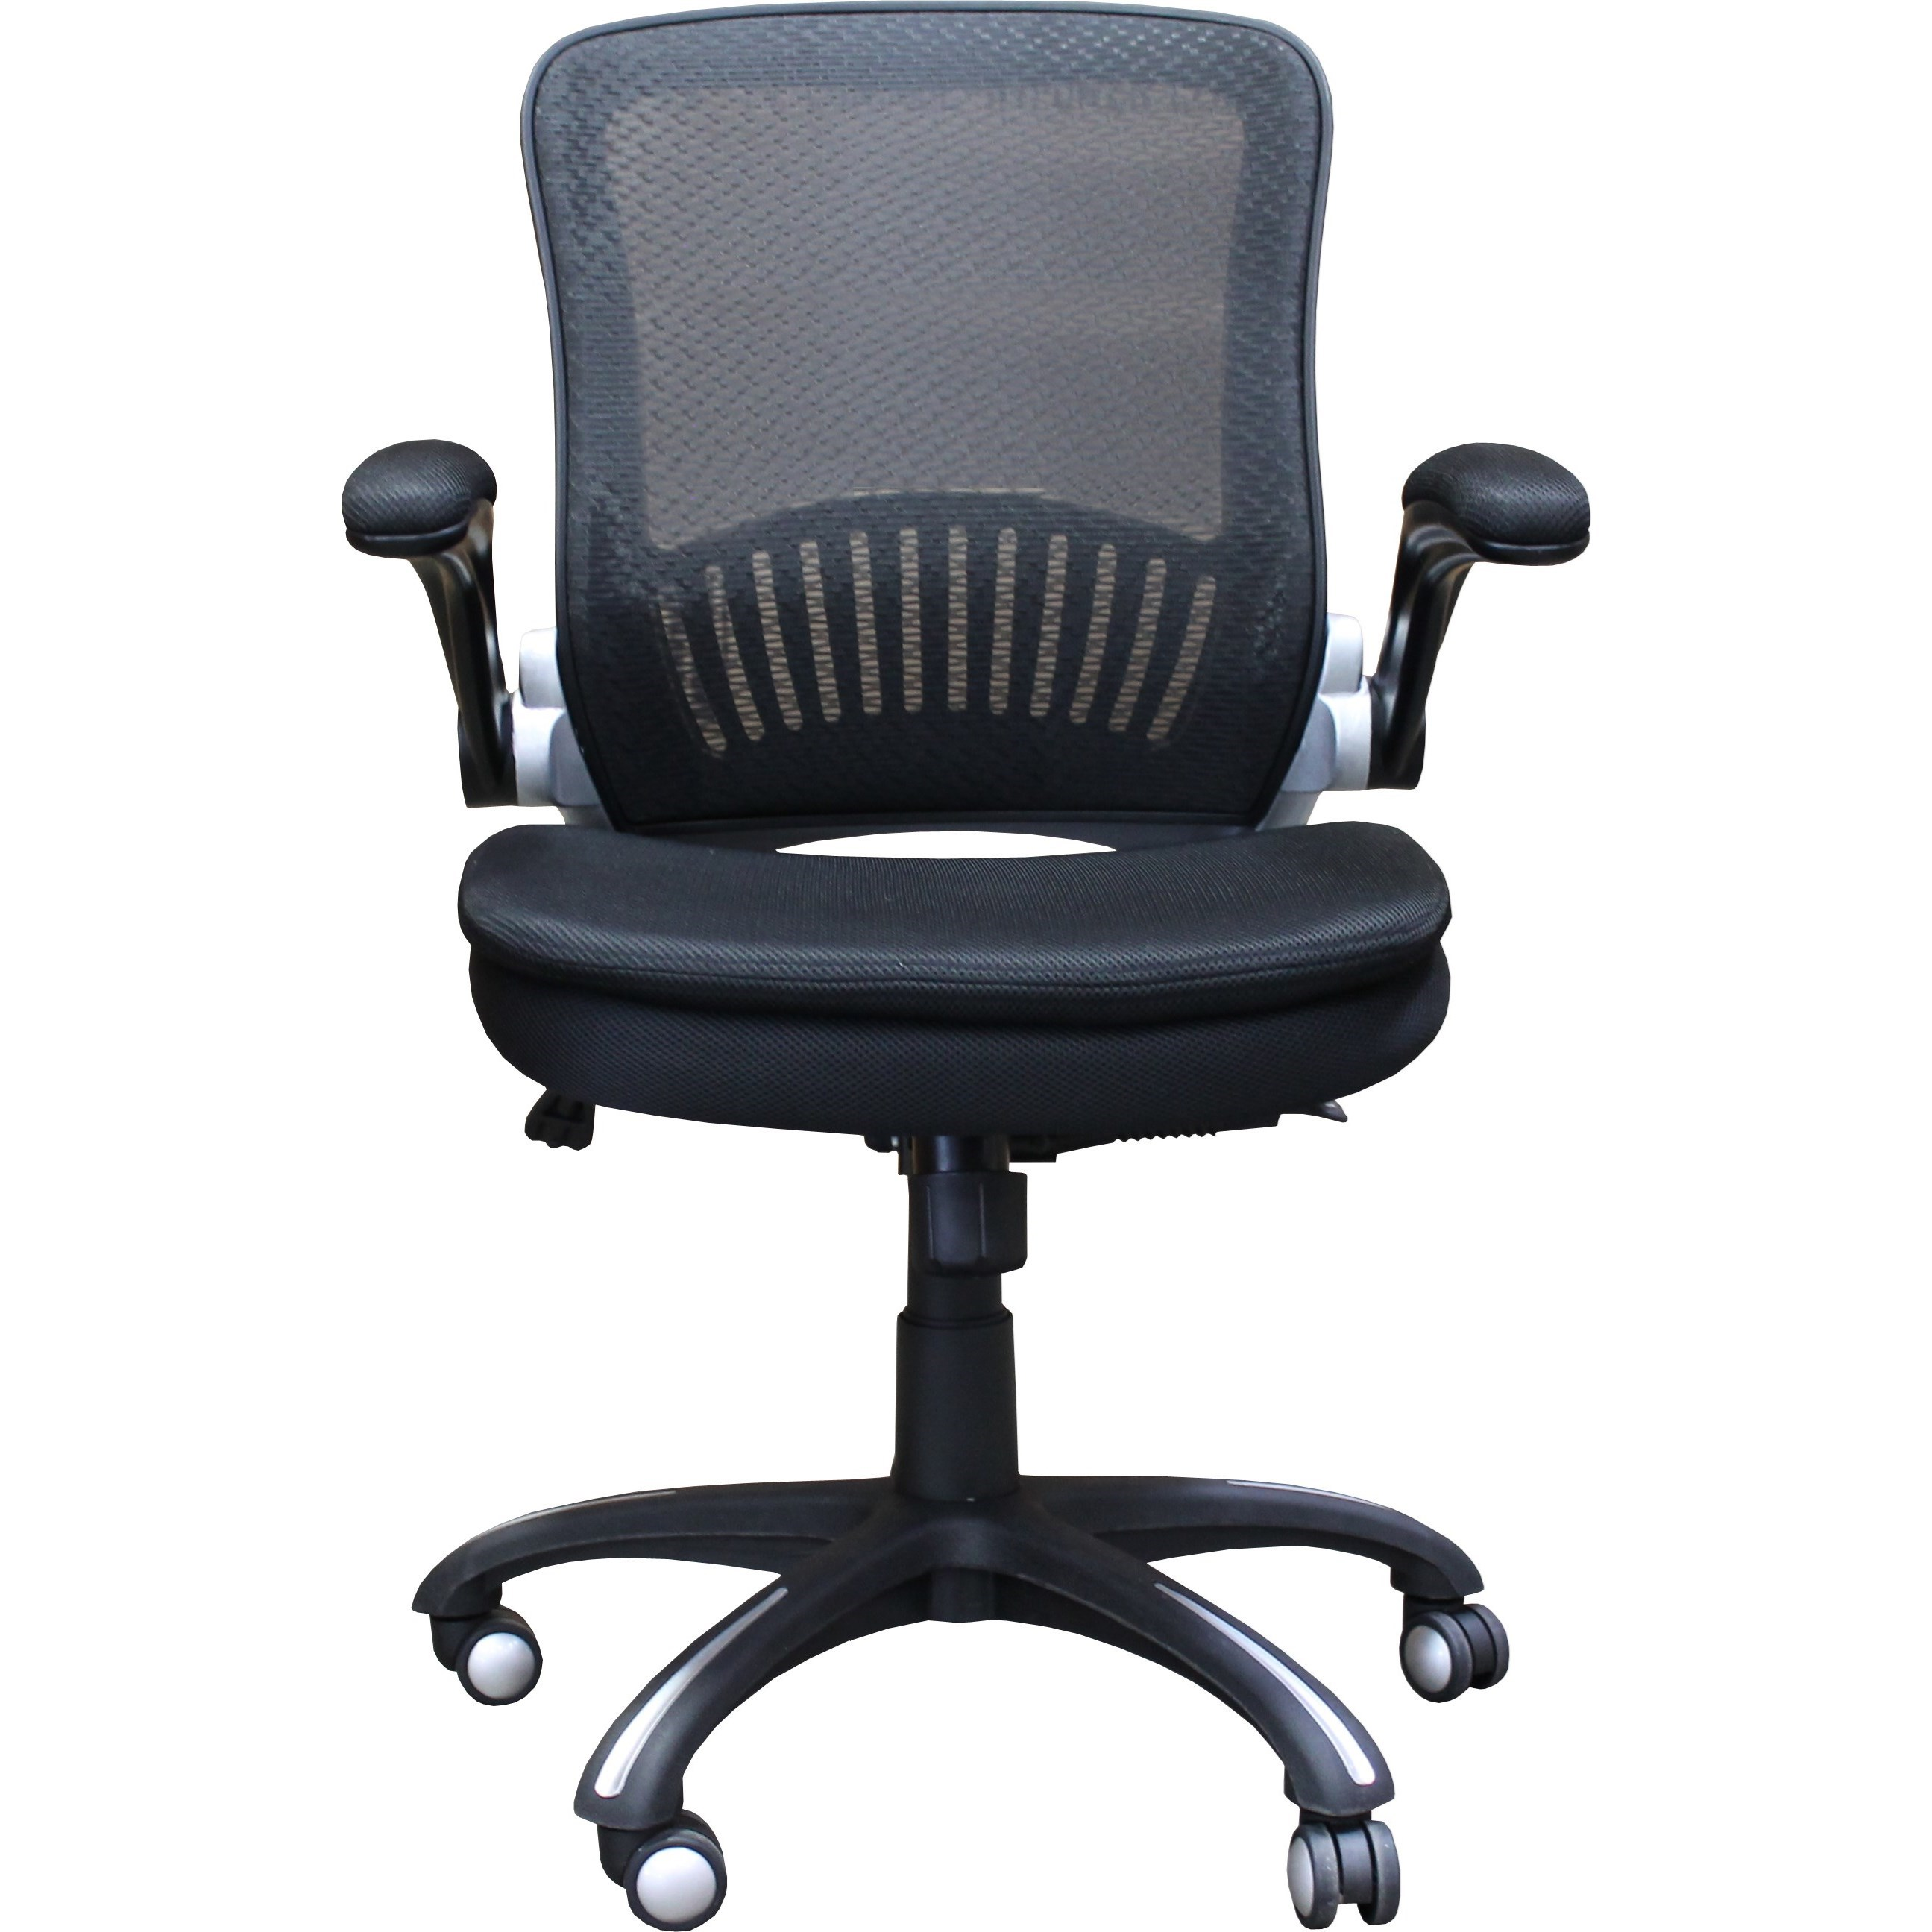 Desk Chairs Mesh Desk Chair by Parker Living at Miller Waldrop Furniture and Decor